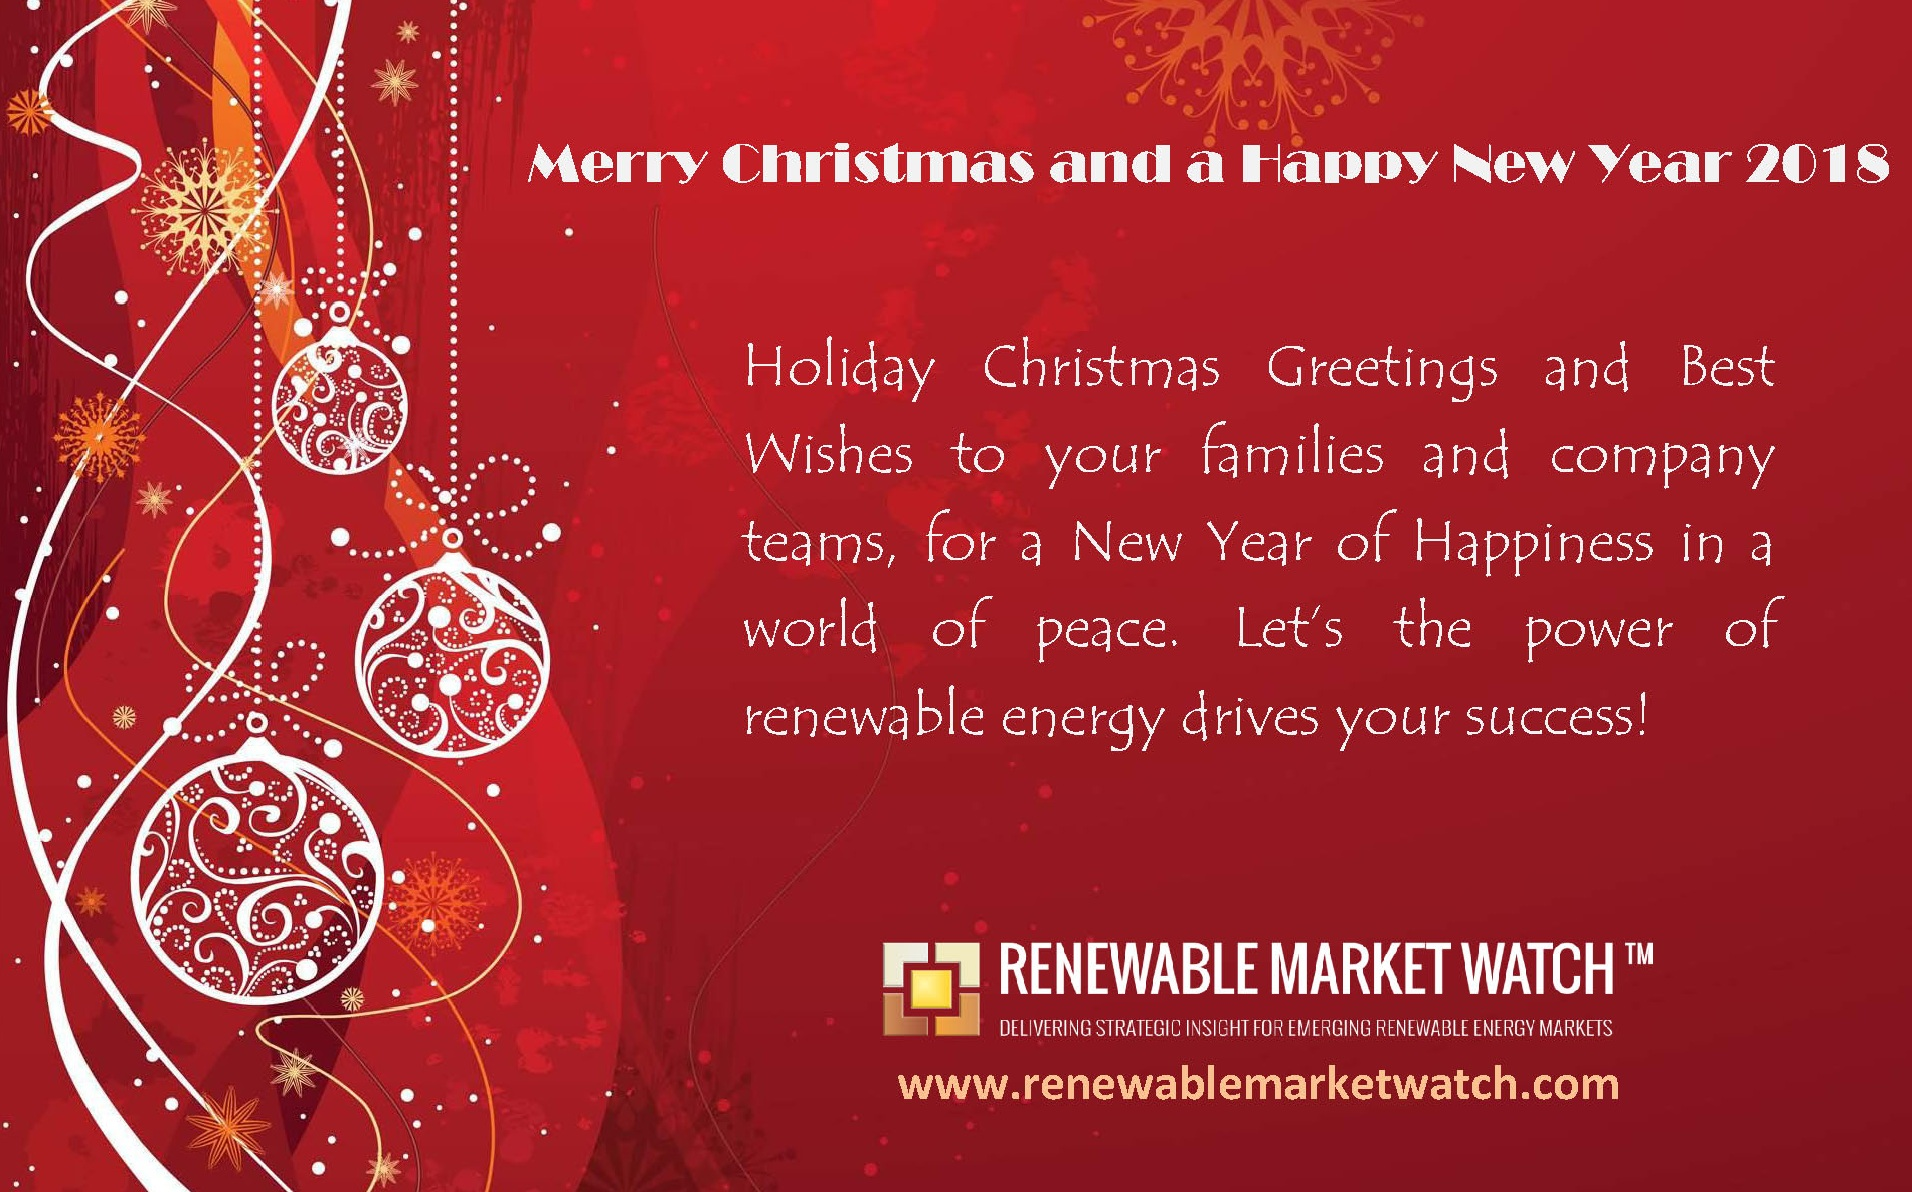 Seasons Greetings For 2018 From Renewable Market Watch